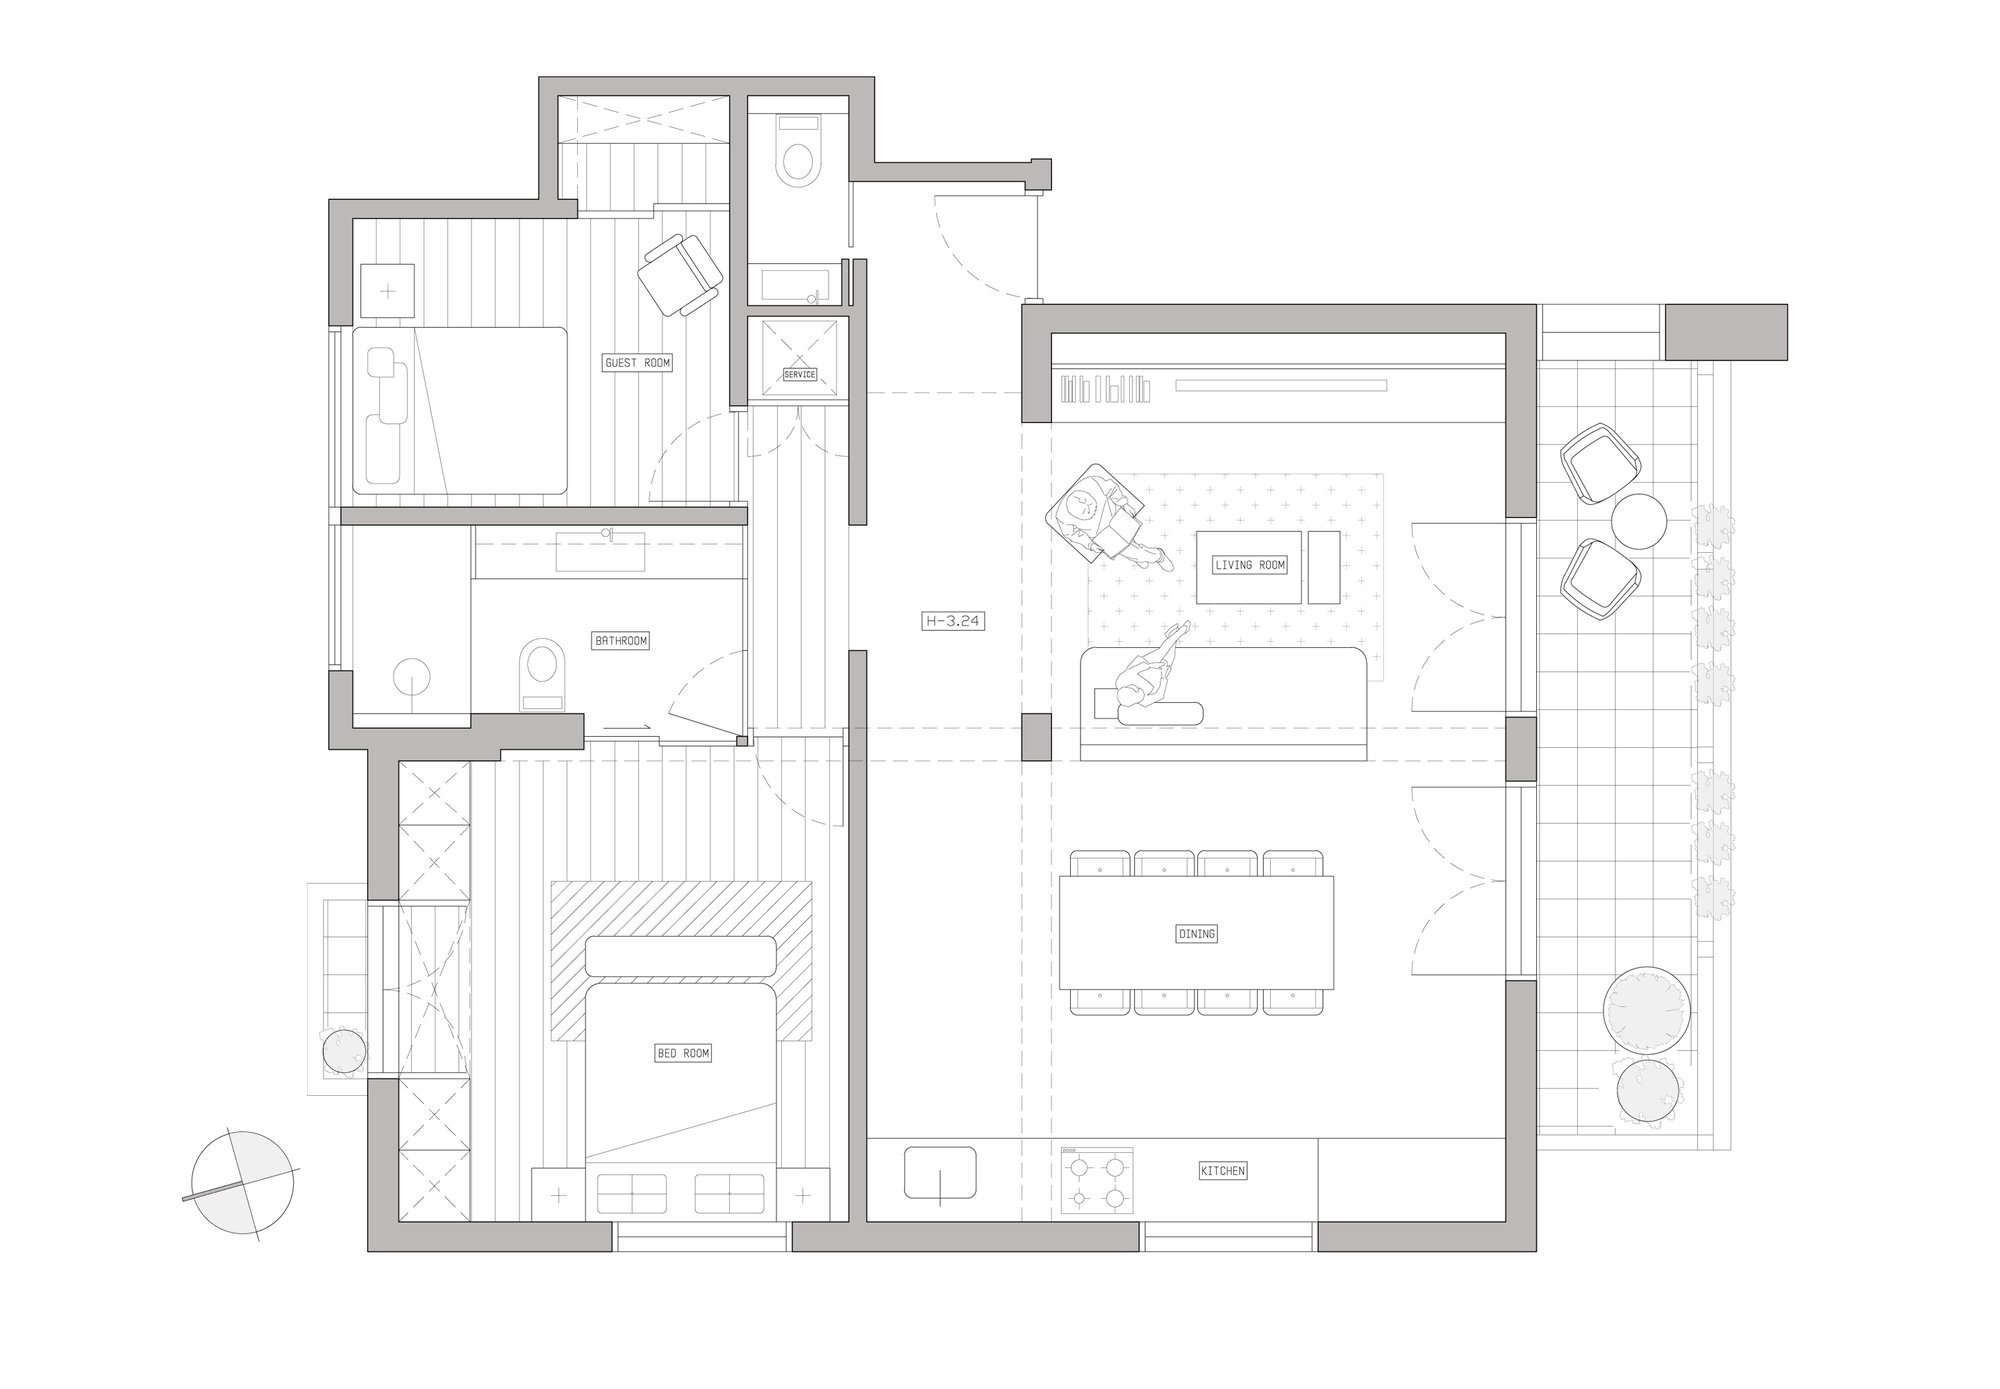 Bauhaus Apartment Redesign - Small Apartment - Studio Raanan Stern Architect - Tel Aviv - Floor Plan - Humble Homes